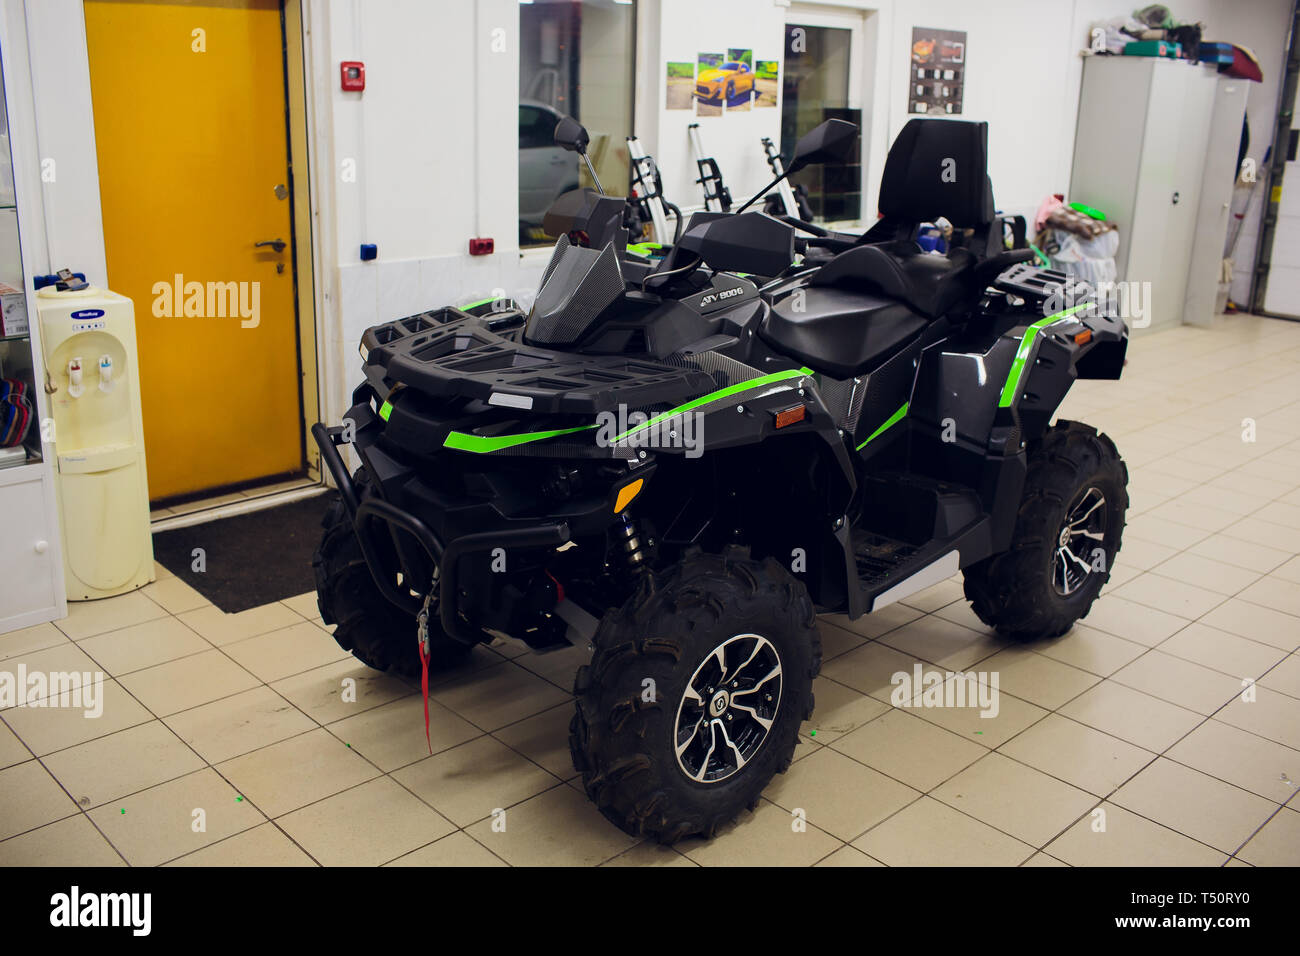 Ufa, Russia, 2 July, 2018: Quad bike BRP Can-Am OUTLANDER 800 XMR. - Stock Image